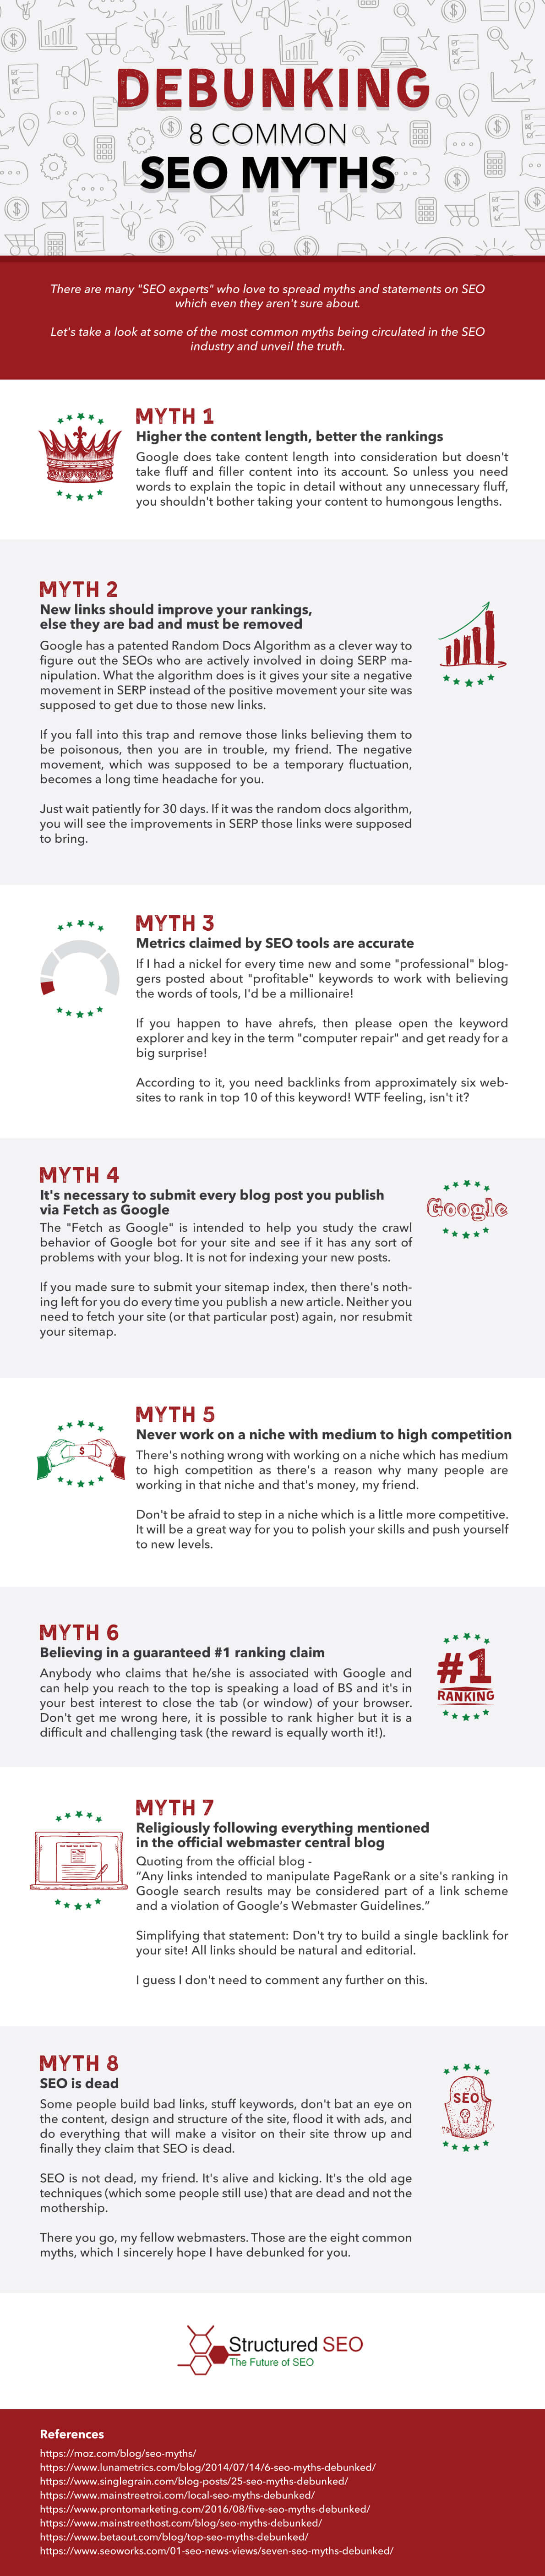 8 comman SEO Myths